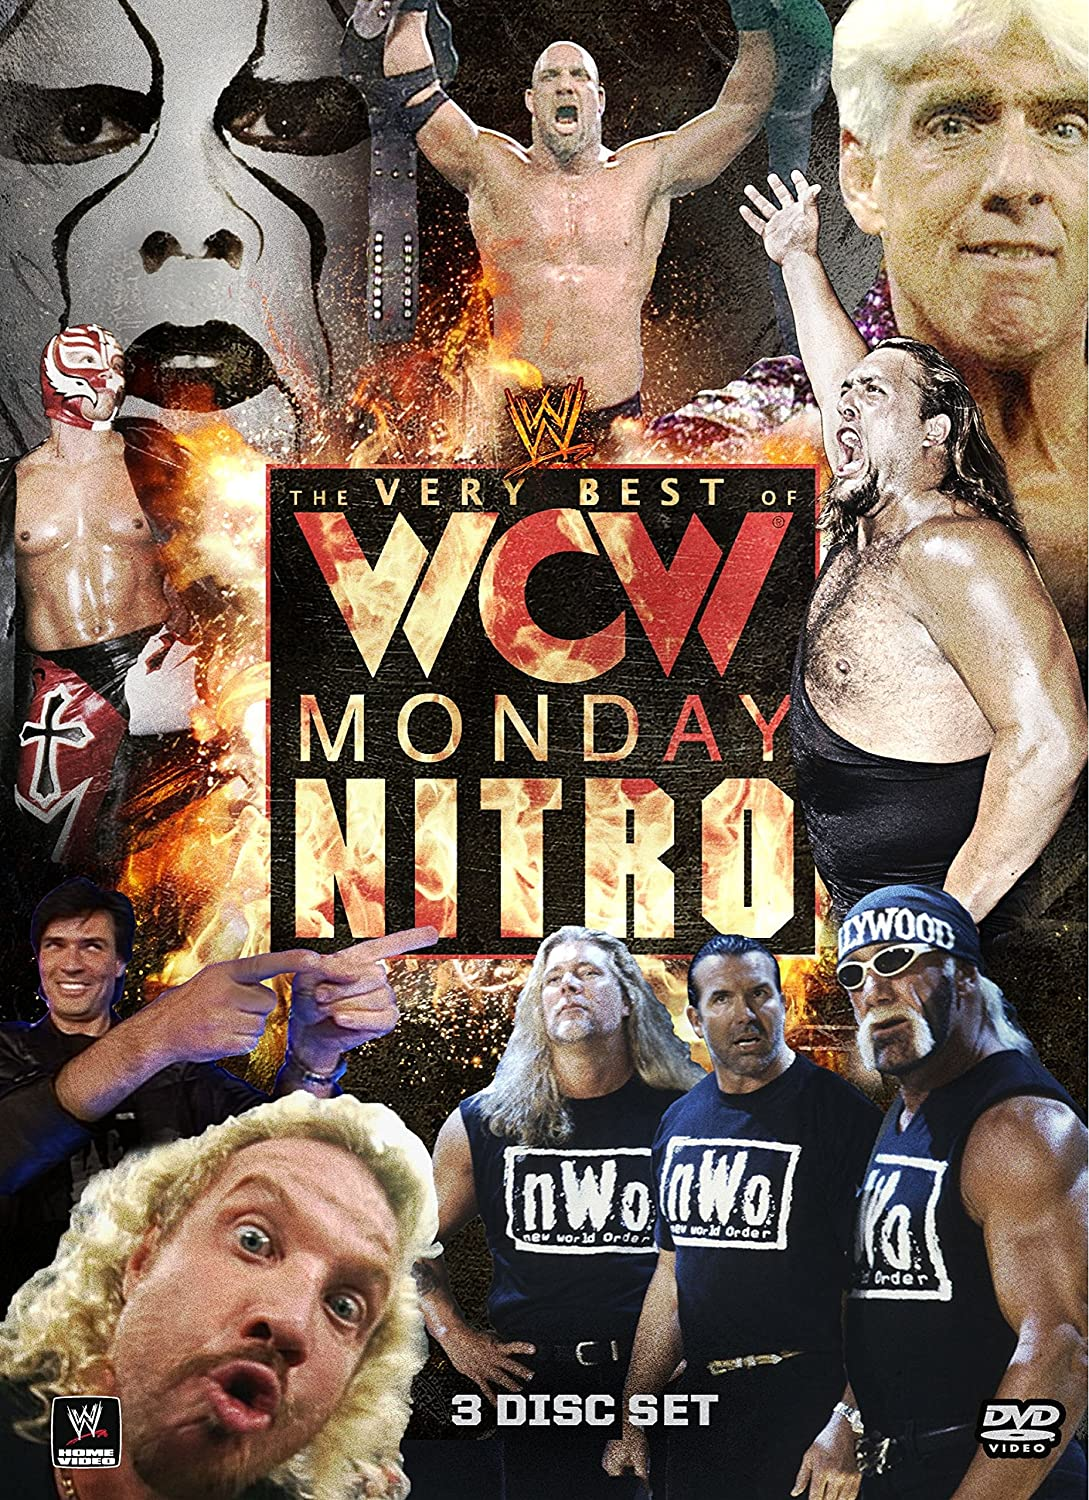 Amazon.com: The Very Best of WCW Monday Nitro: Diamond Dallas Page,  Goldberg, Sting: Movies & TV